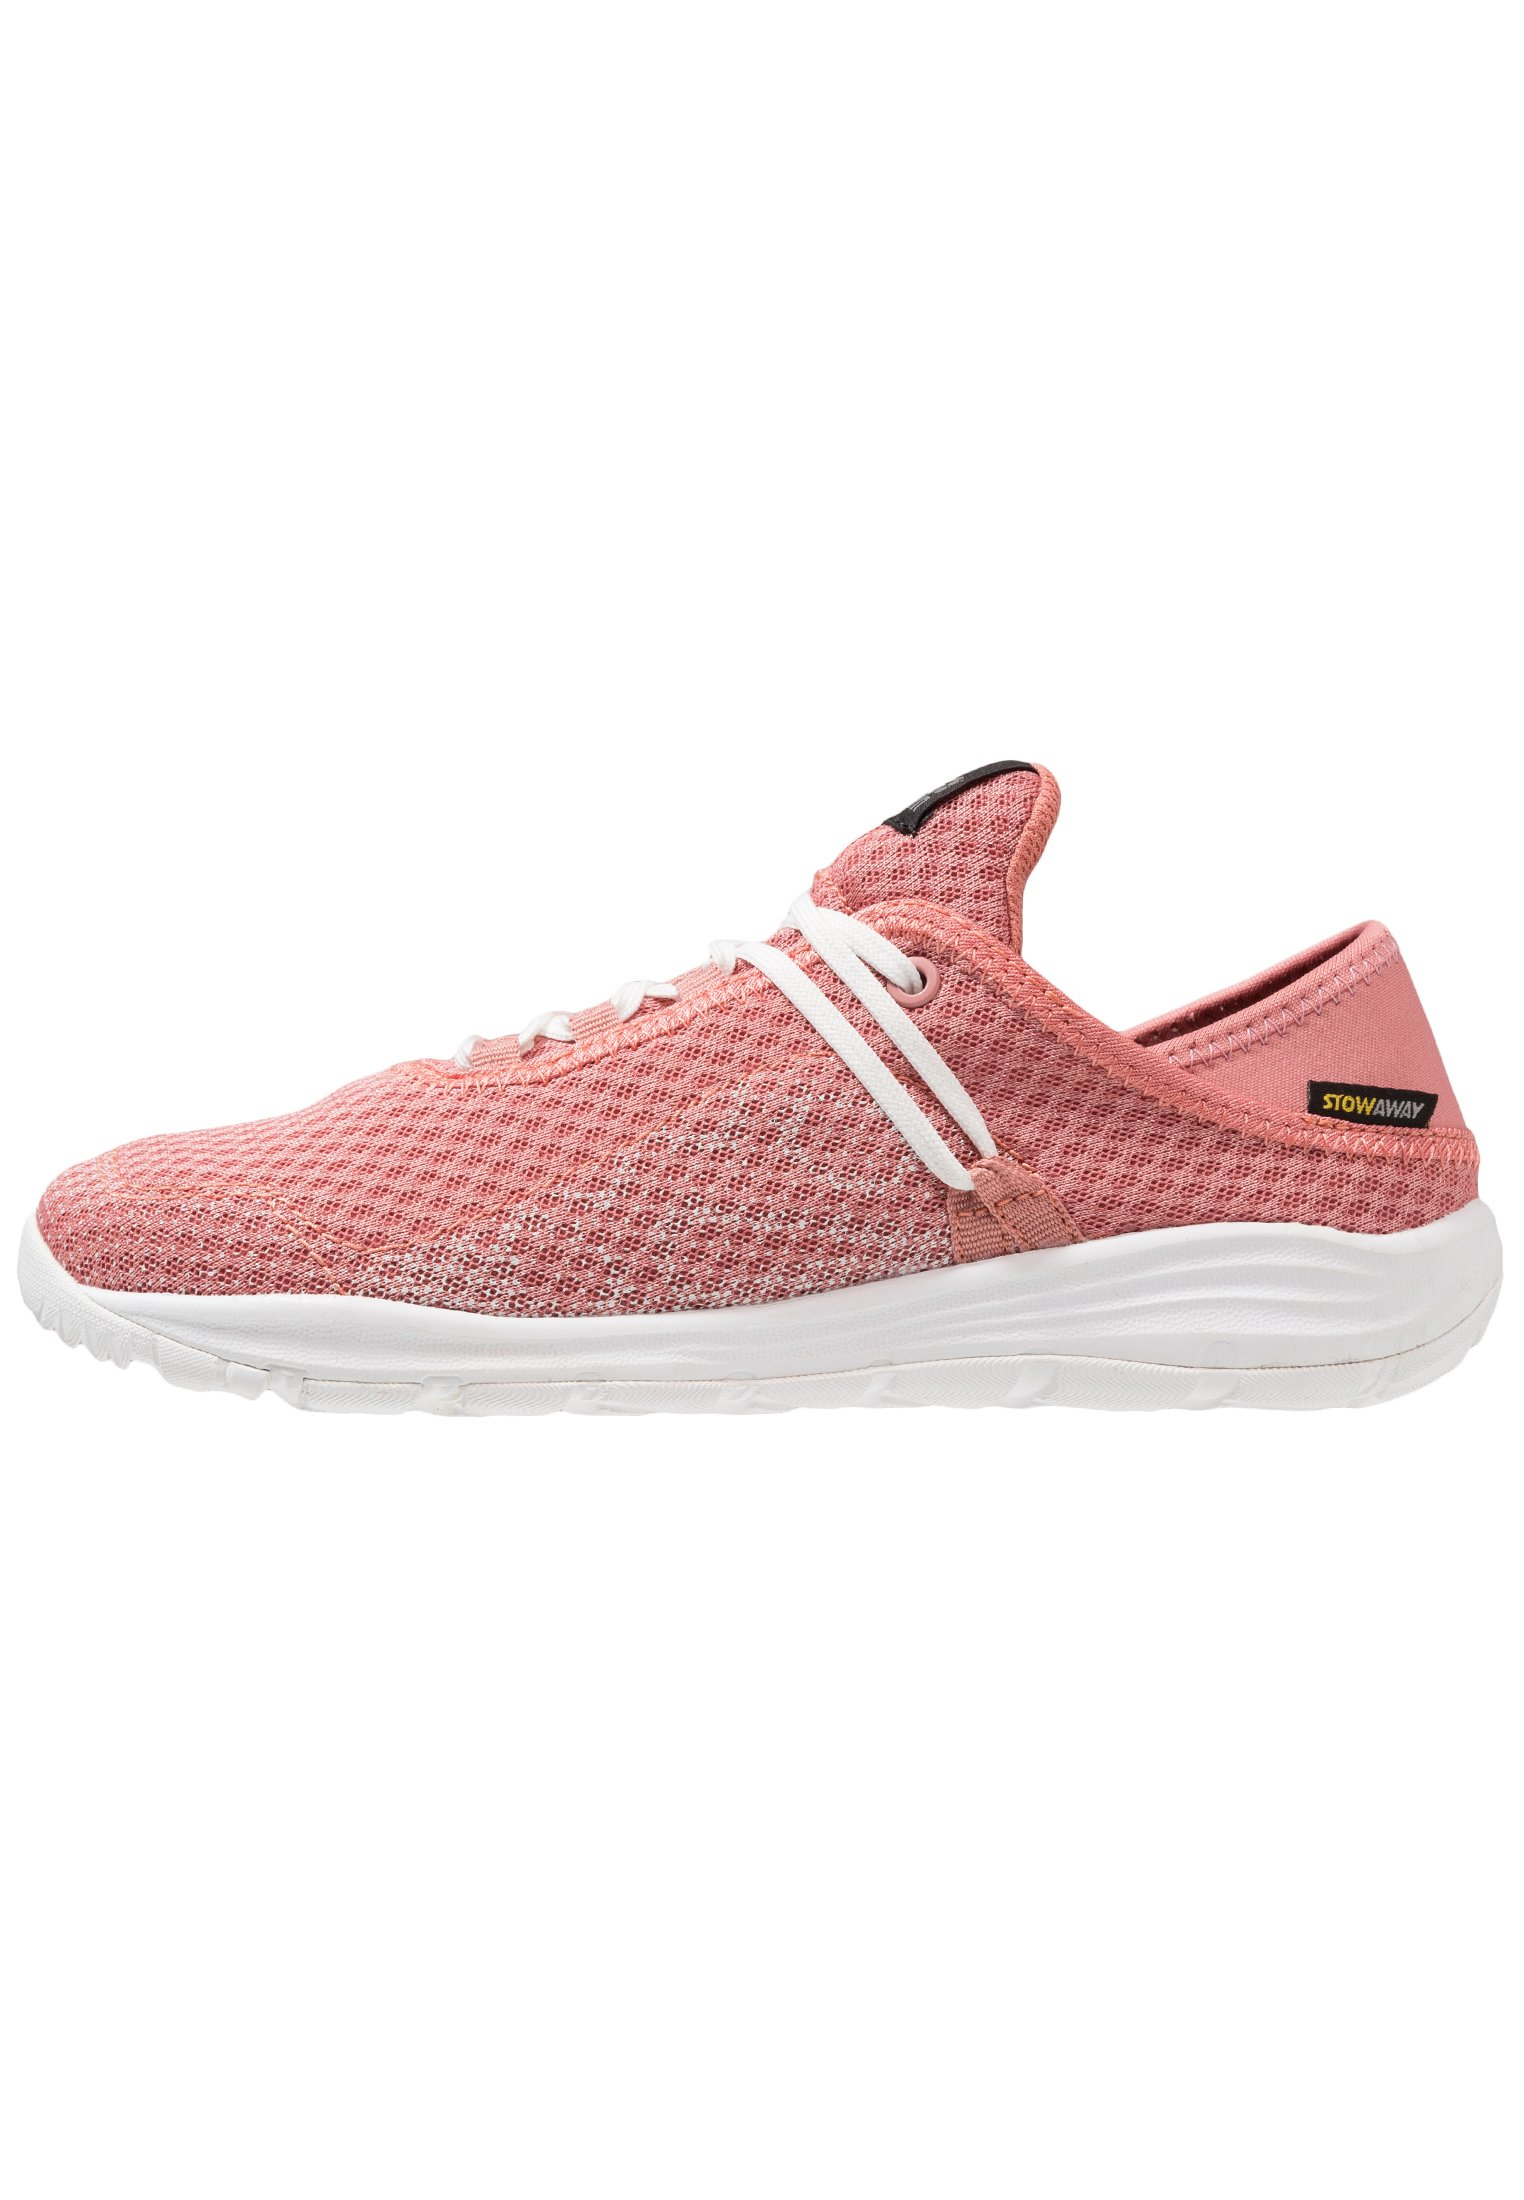 SEVEN WONDERS PACKER LOW Walkingschuh rose quartz